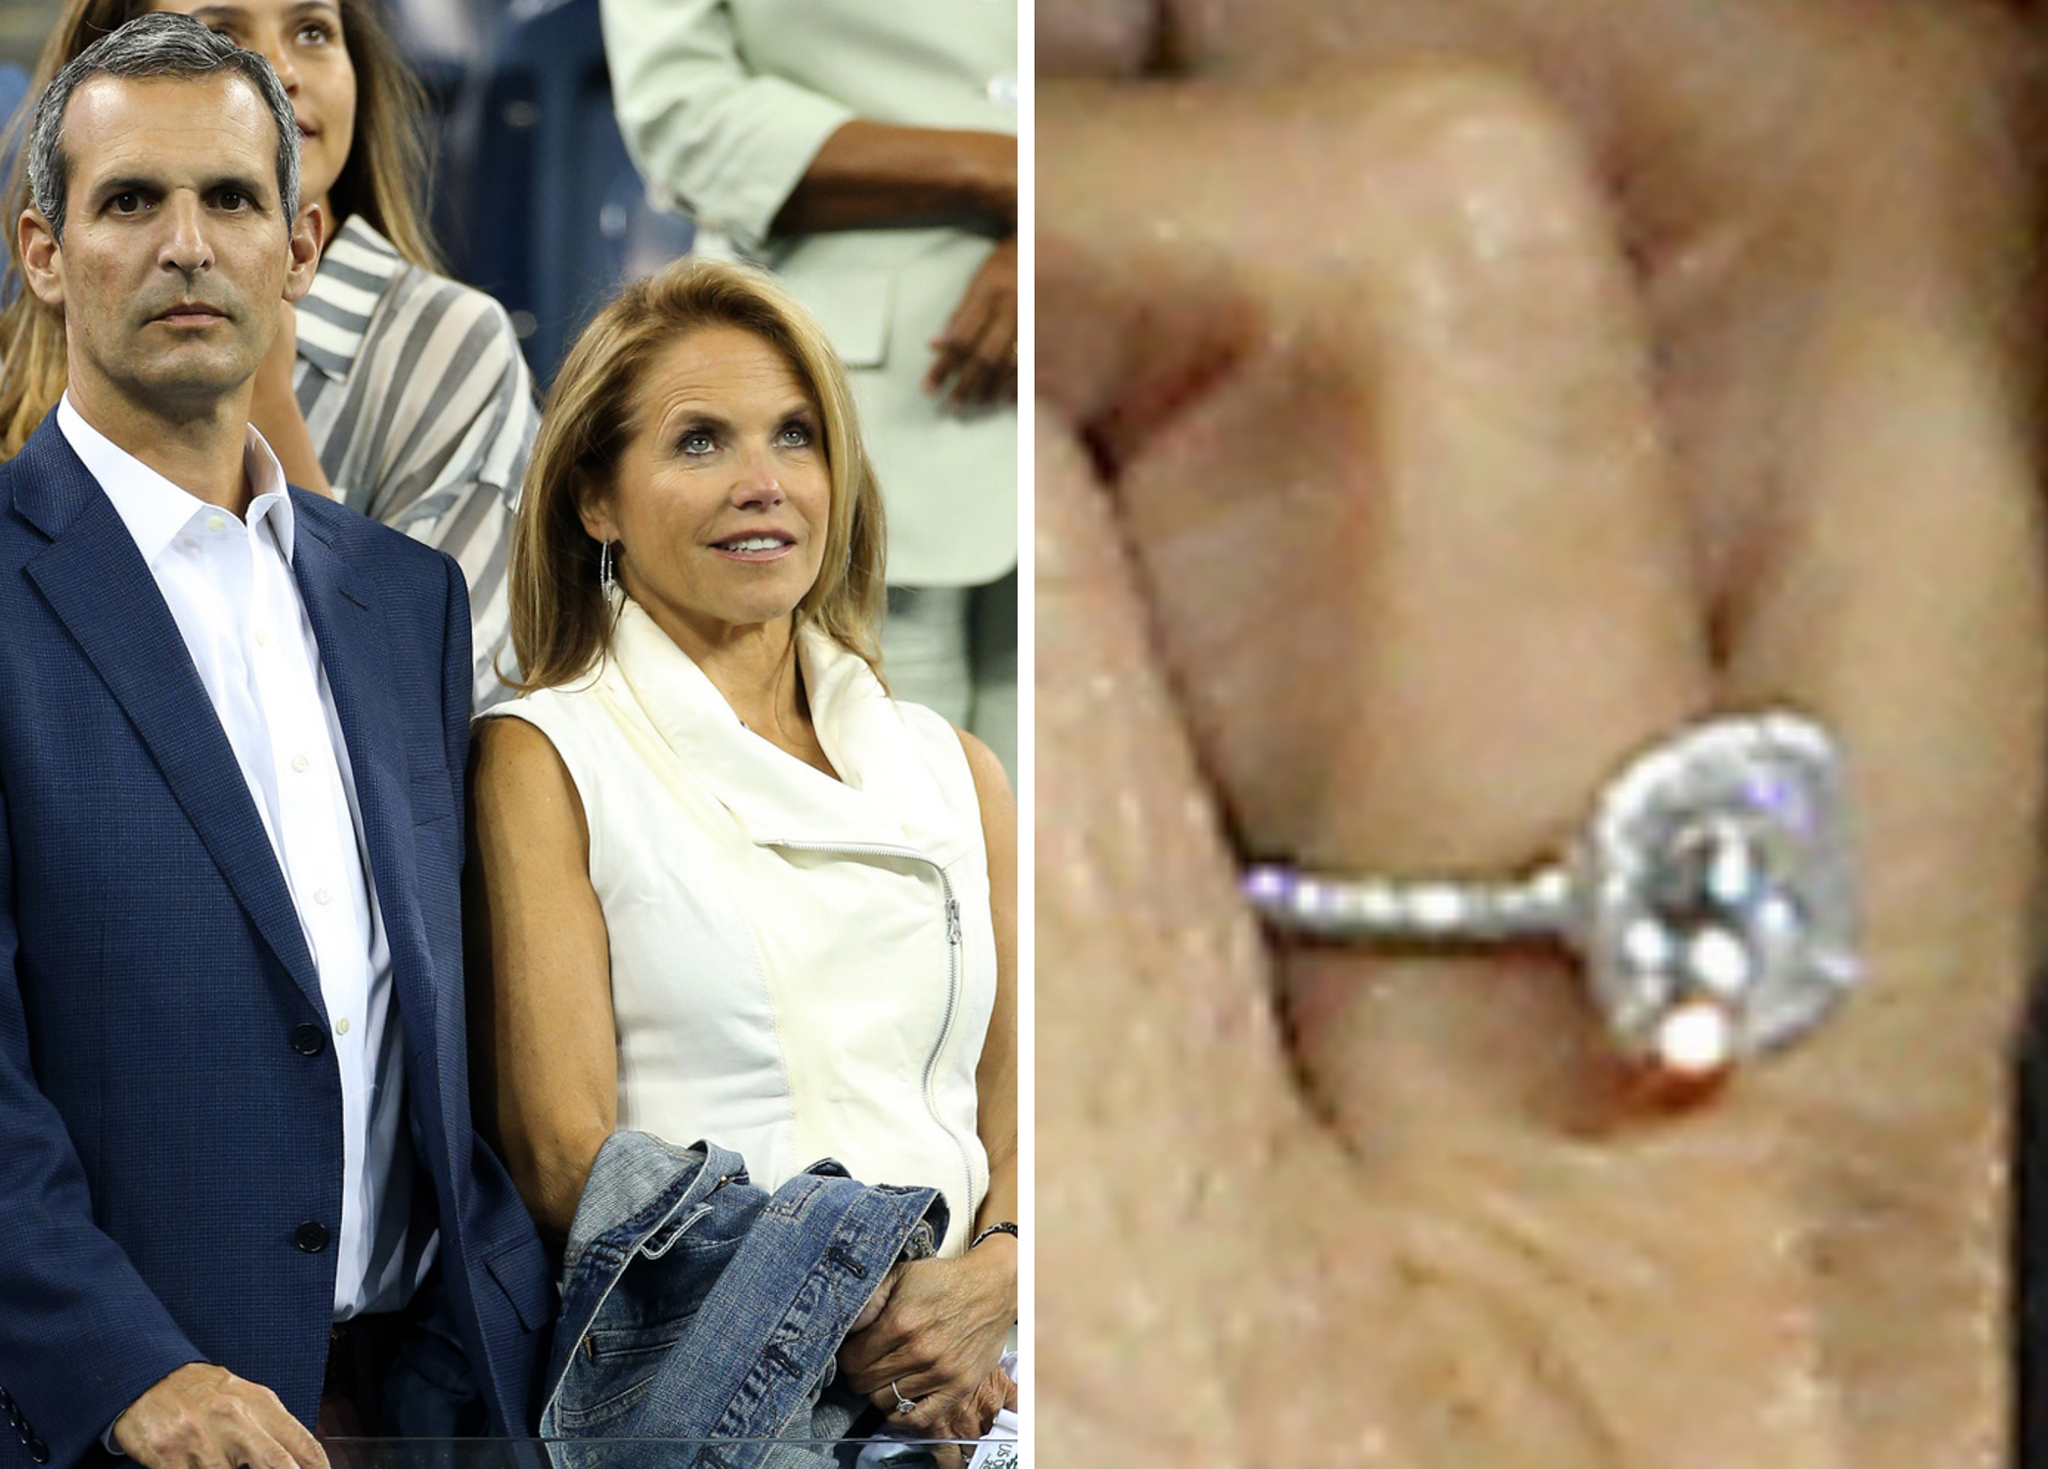 John Molner, Katie Couric, and her engagement ring (Pacific Coast News)